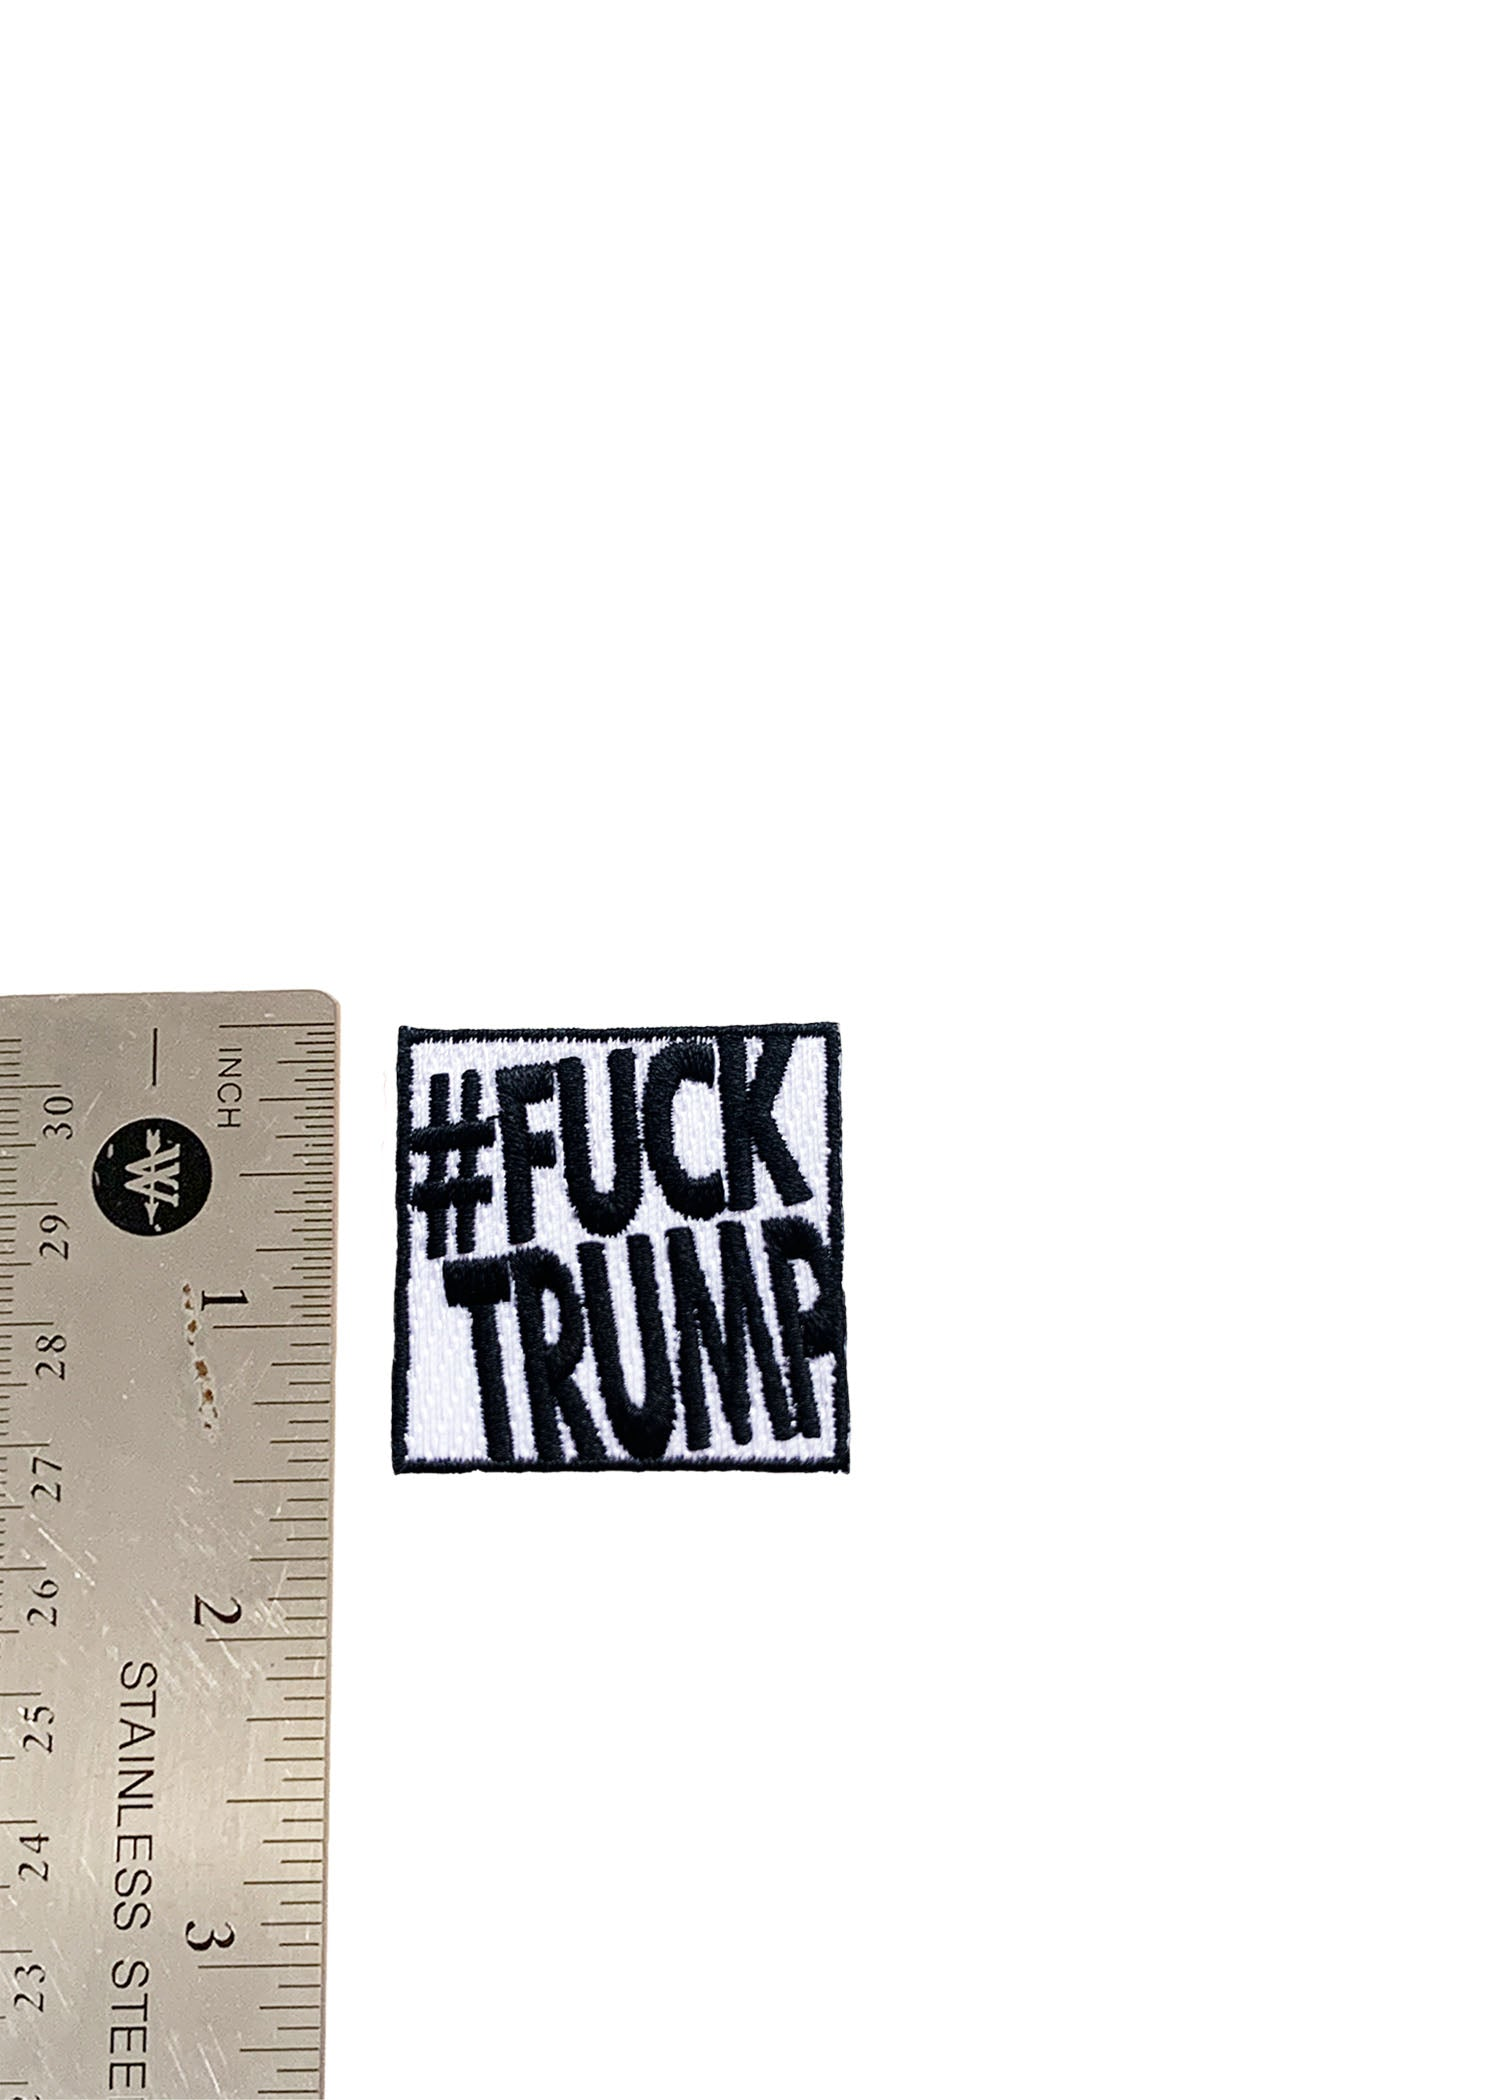 Oversized Fuck Trump Iron On Patch